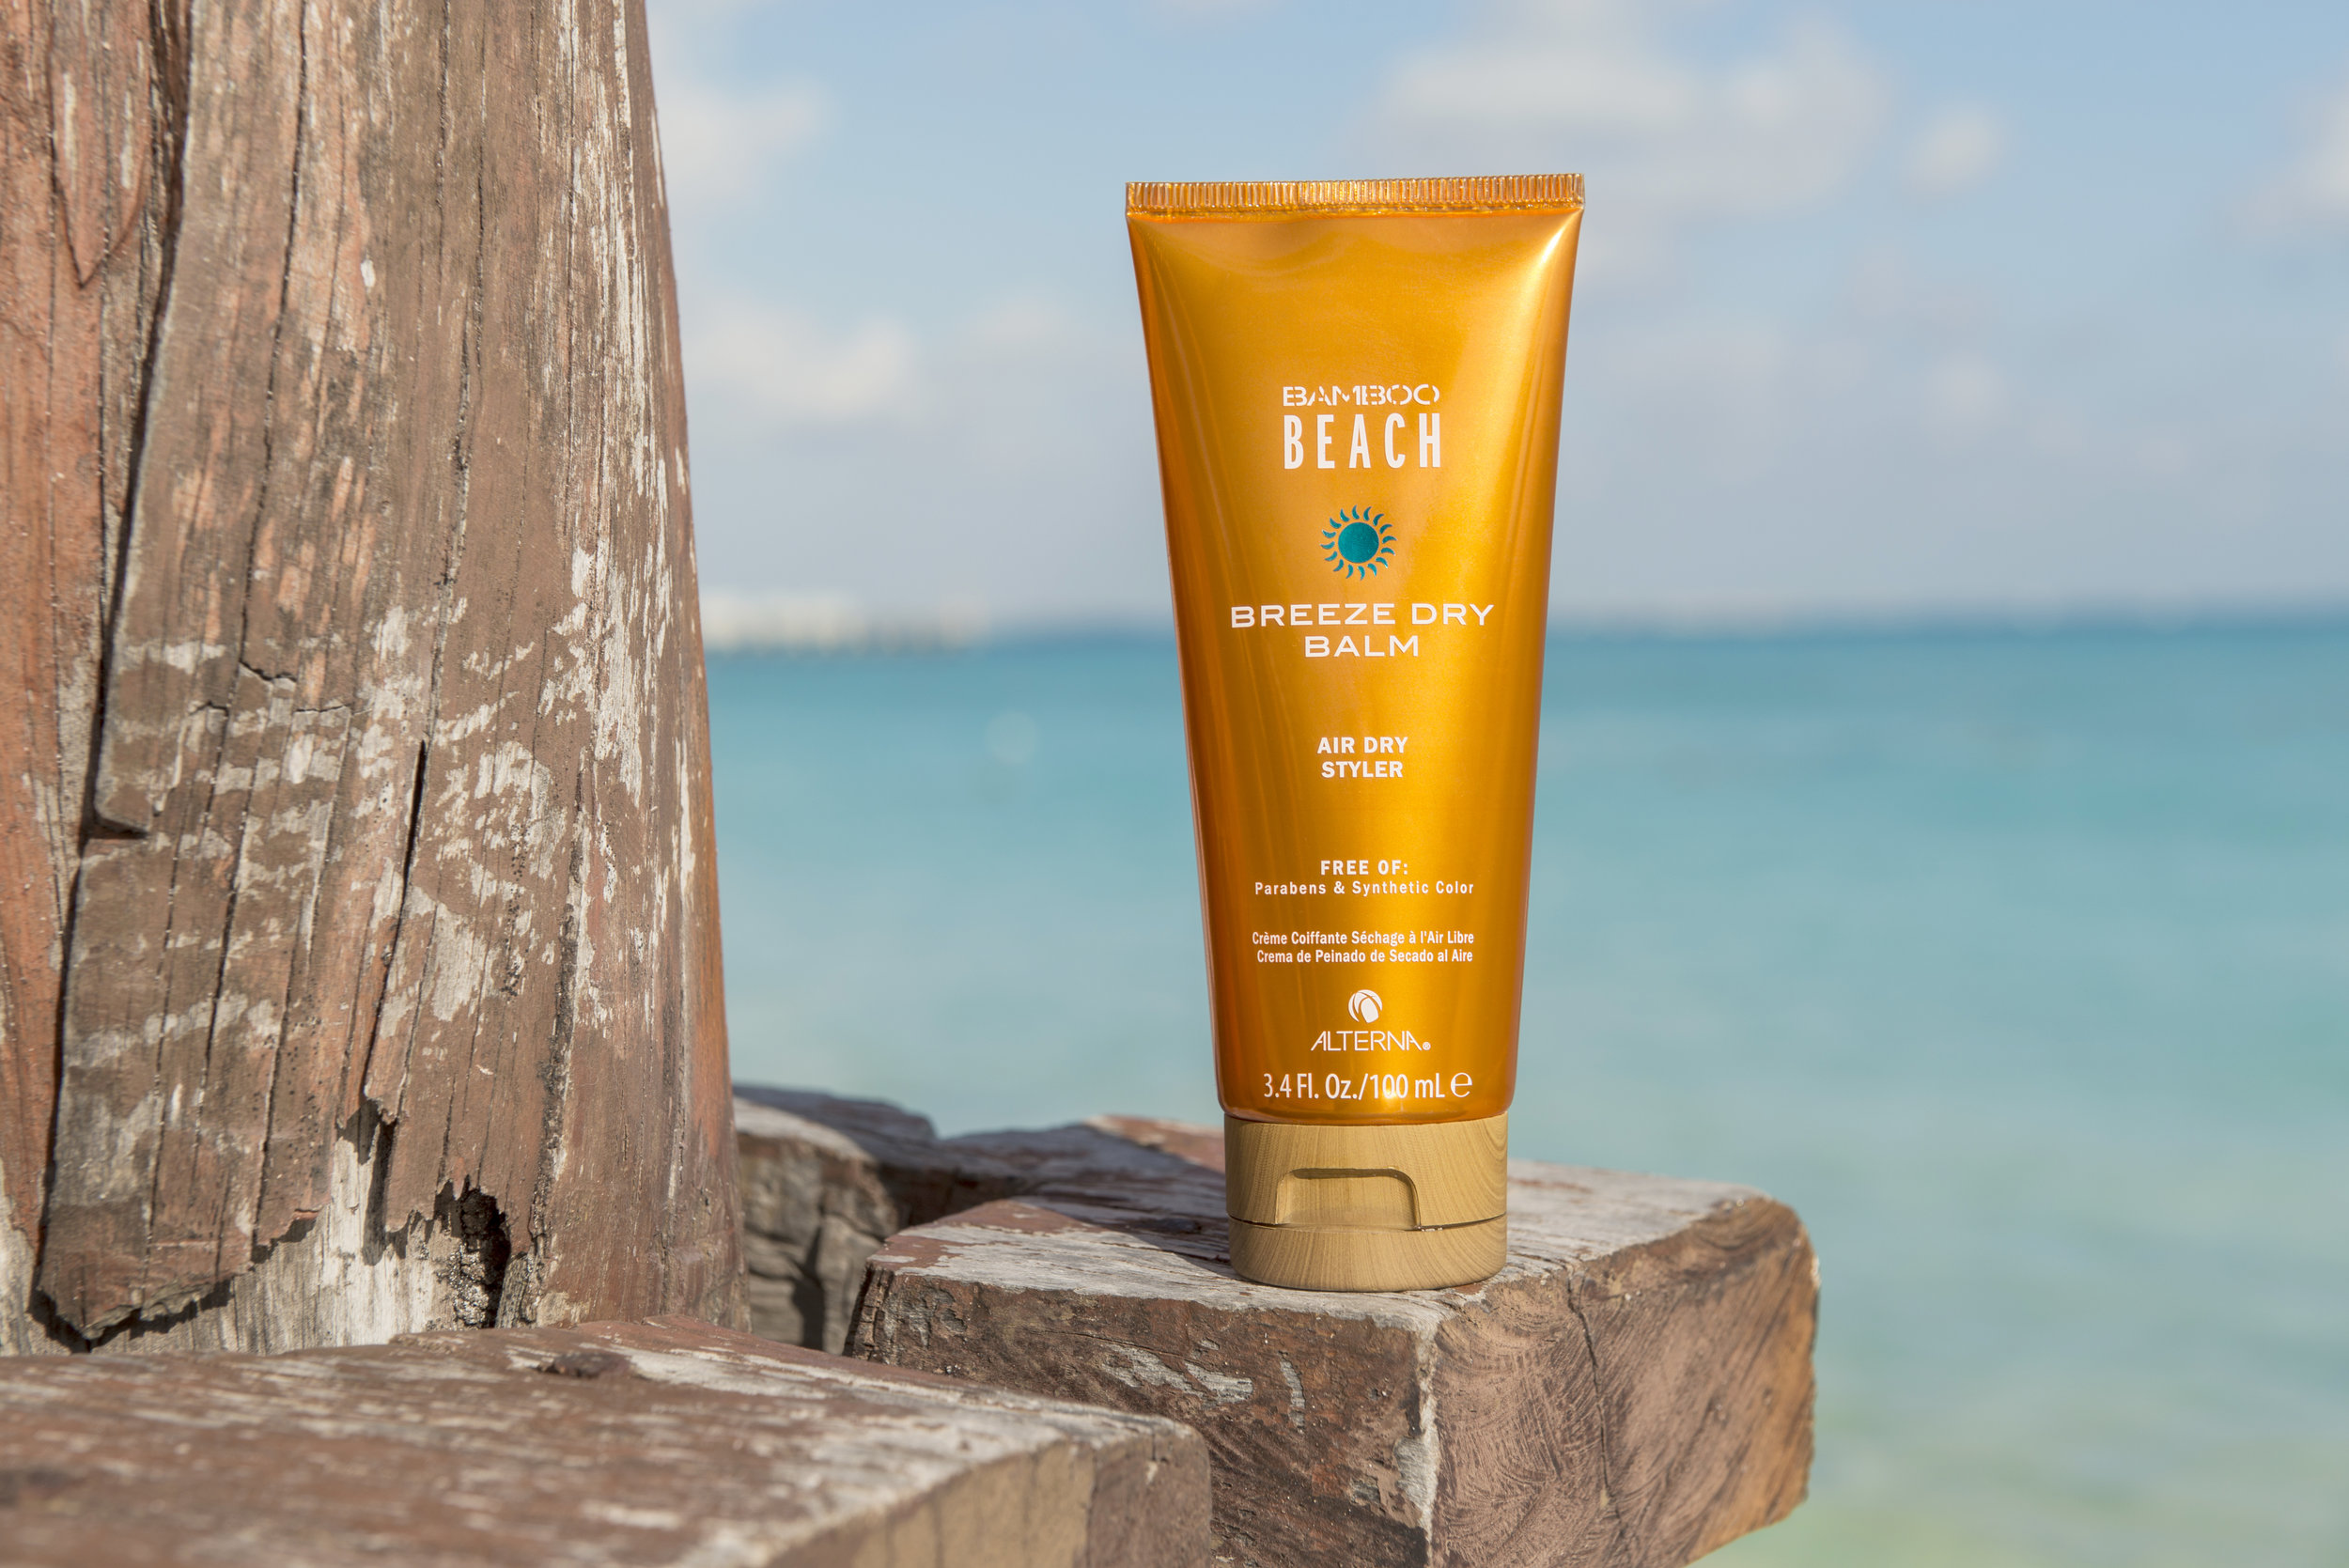 Alterna Haircare Bamboo Beach Breeze Dry Balm - photo by Andrew Werner.jpg